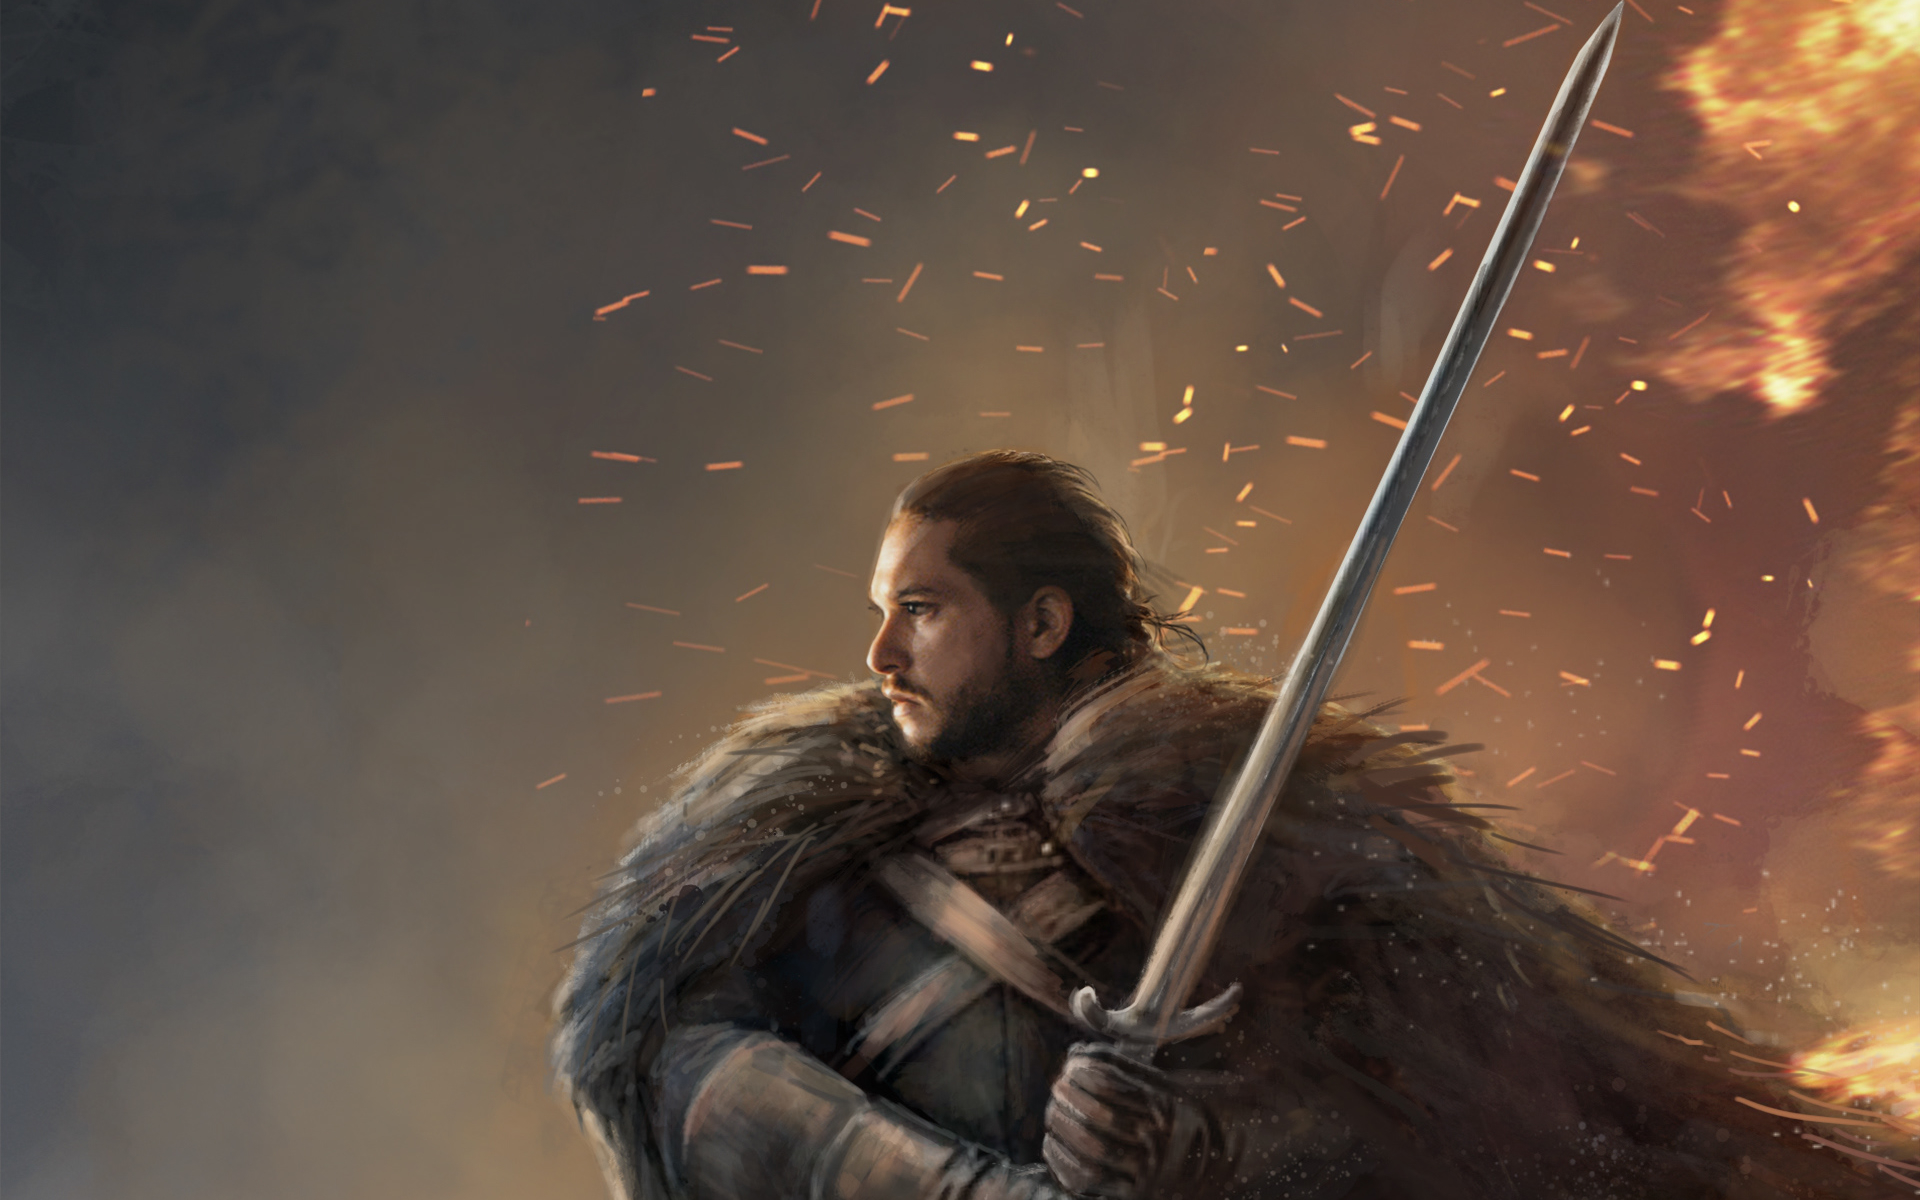 Wallpaper Of Game Of Thrones Jon Snow Sword Warrior Art